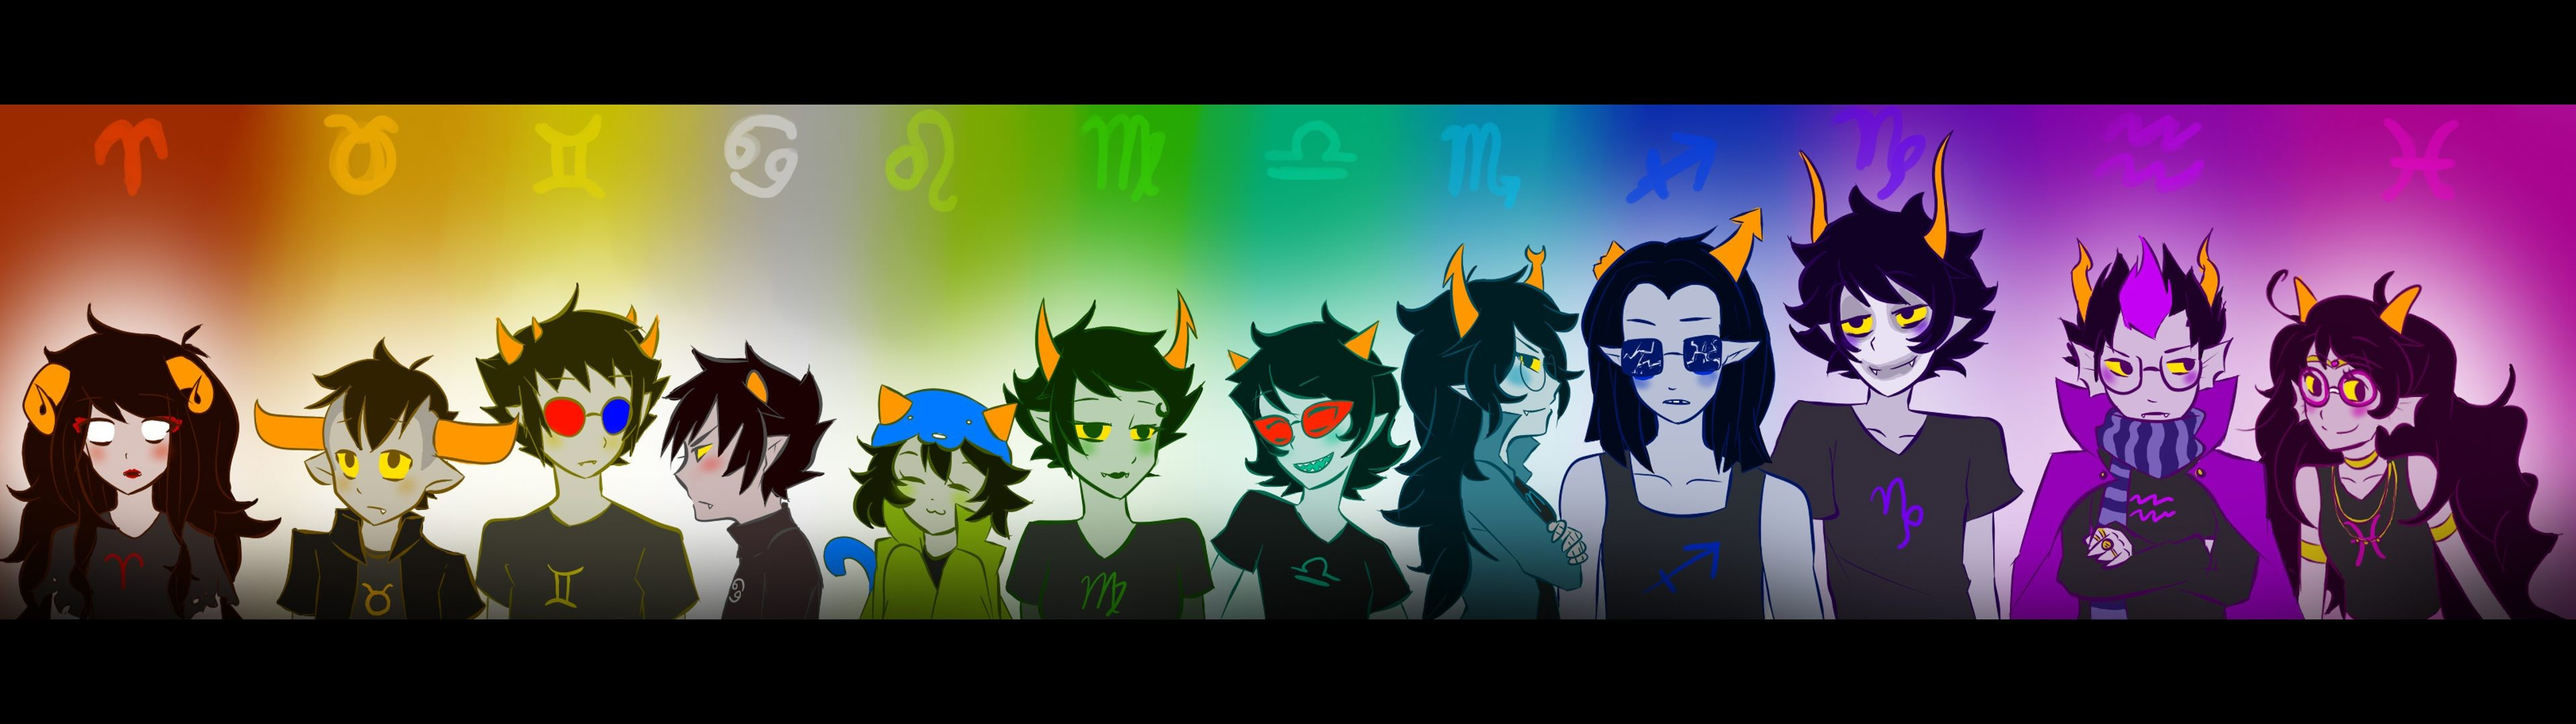 Res: 3840x1080, Homestuck HD Wallpapers and Backgrounds